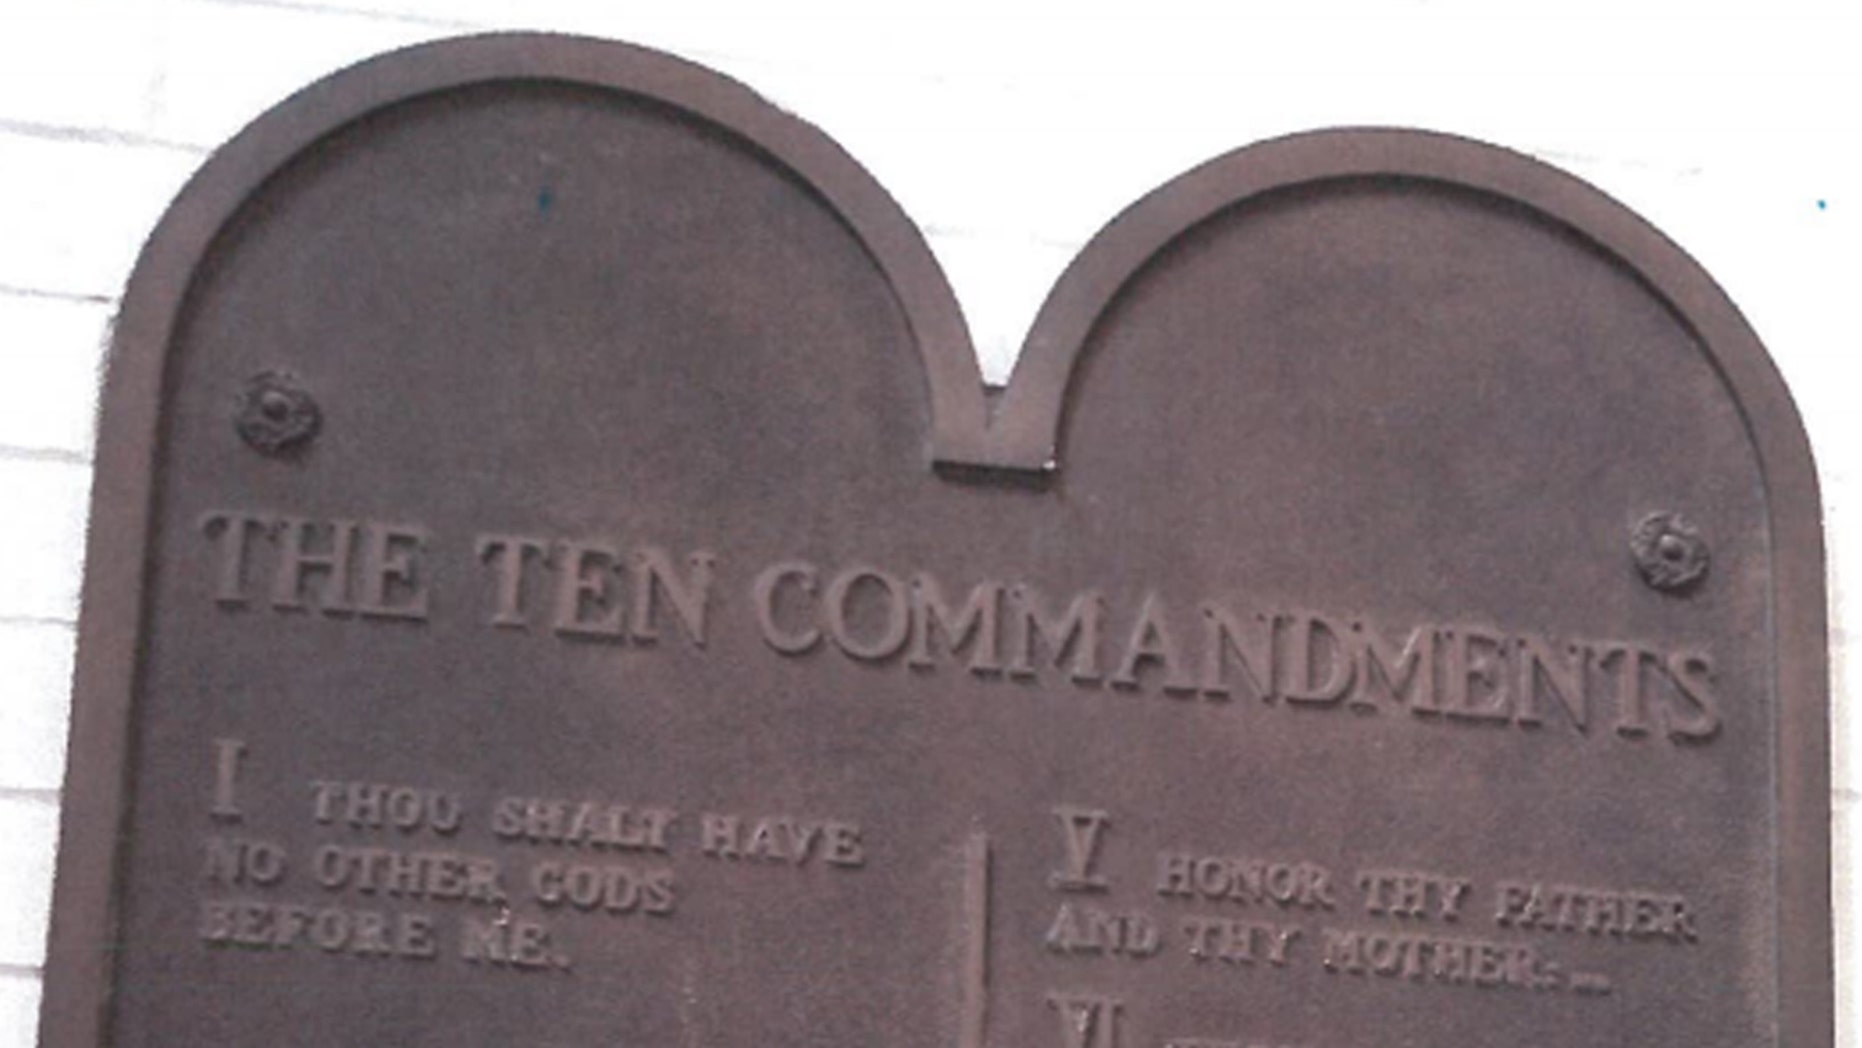 Westlake Legal Group Ohio10Commandments Ohio school scrubs 92-year-old Ten Commandments plaque after atheists complain fox-news/us/us-regions/midwest/ohio fox-news/us/religion/christianity fox-news/us/education/controversies fox-news/faith-values fox news fnc/us fnc Caleb Parke c02d0bde-ab3a-5286-b046-9d0211772569 article